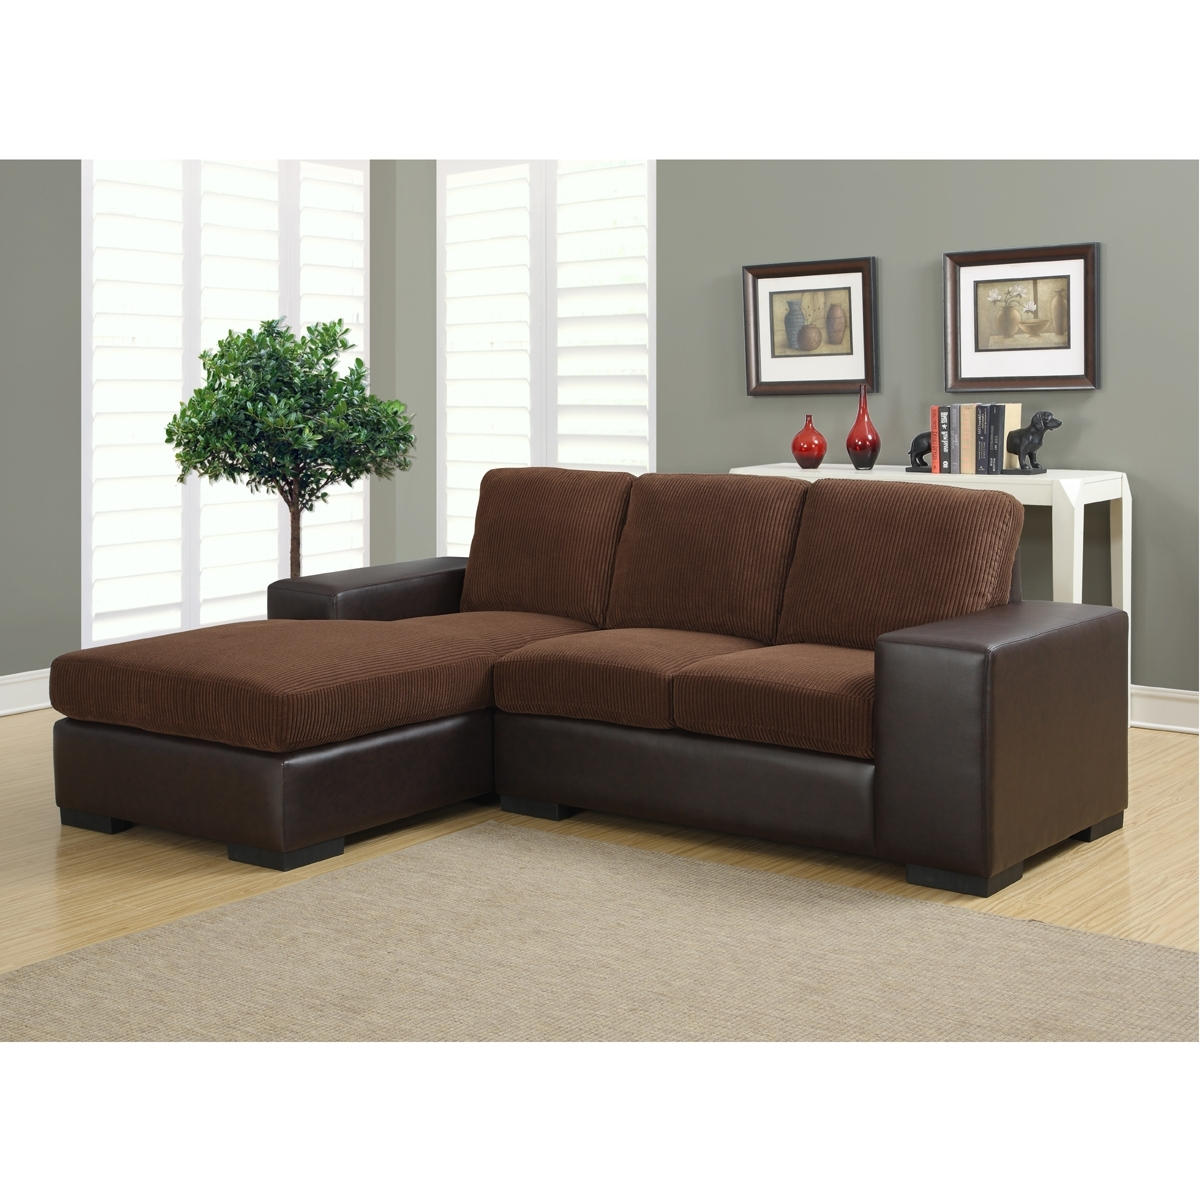 Modern Sectional Sofas In Brown Corduroy With Regard To Famous Sectional Sofas For Condos (View 4 of 20)